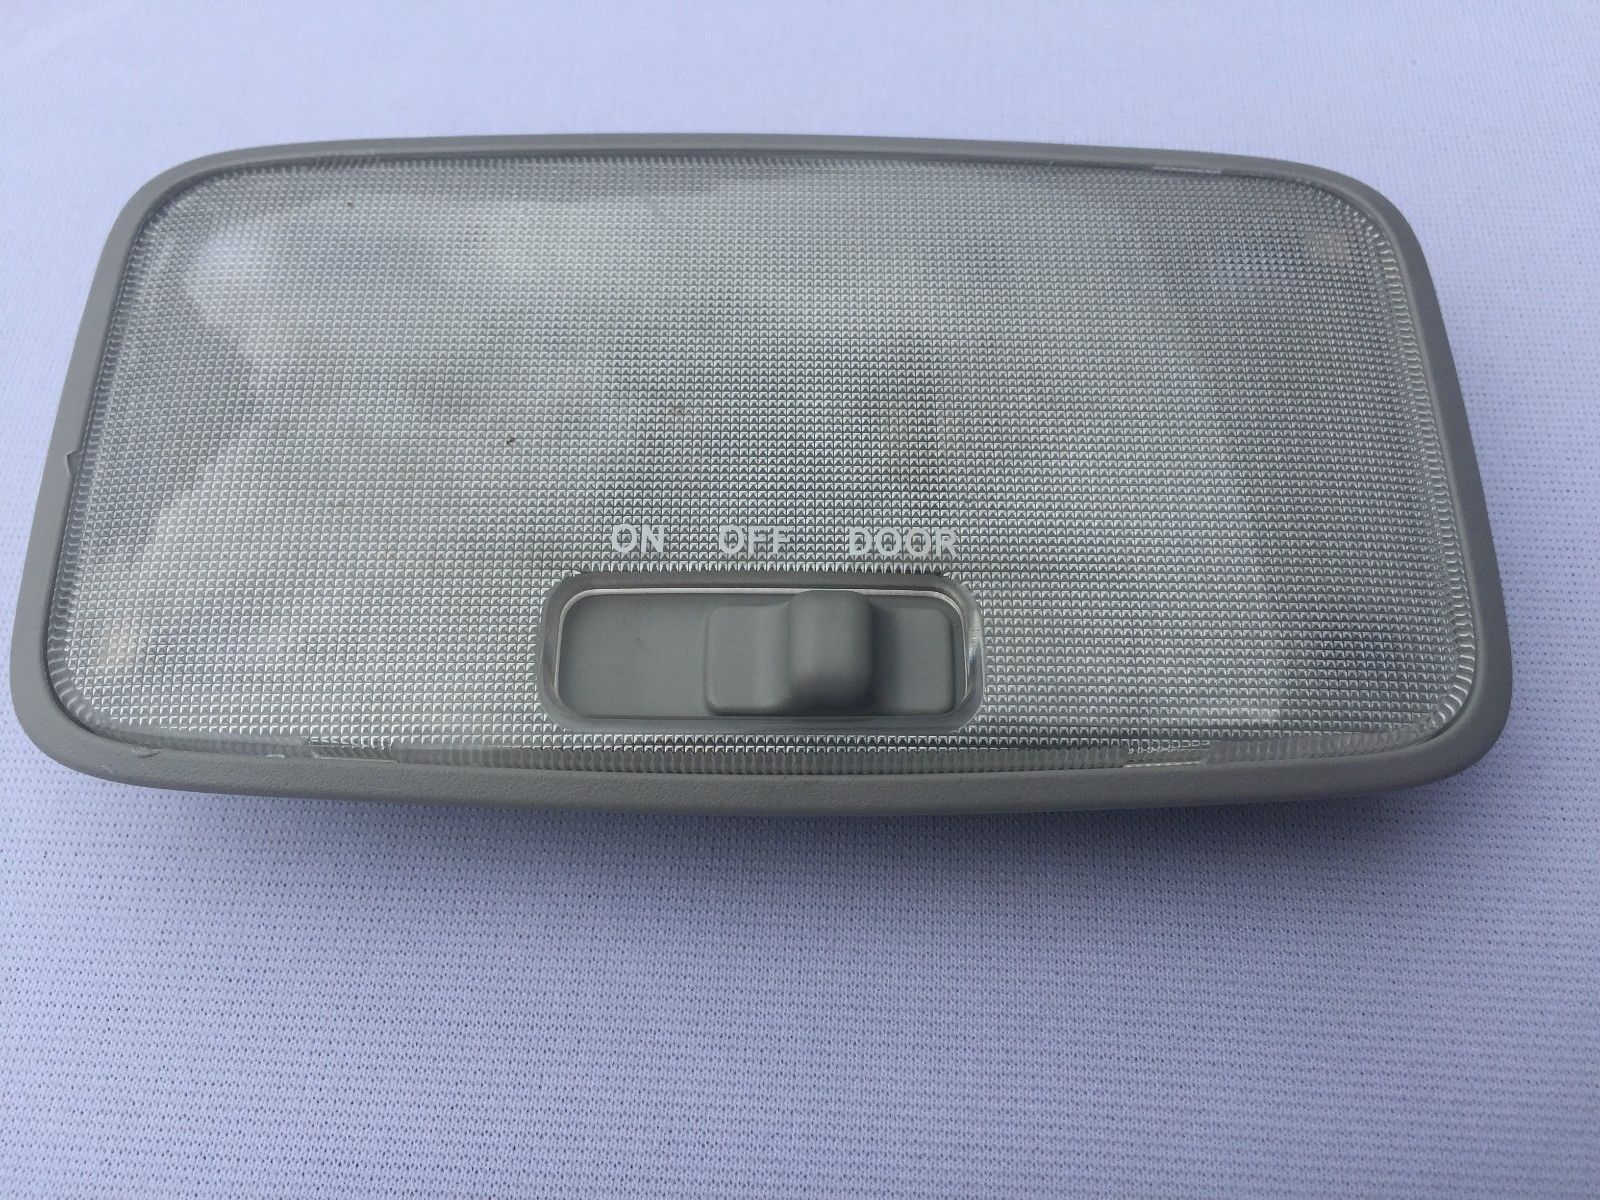 2004-2006 LEXUS RX 330 INTERIOR DOME LIGHT READING OEM